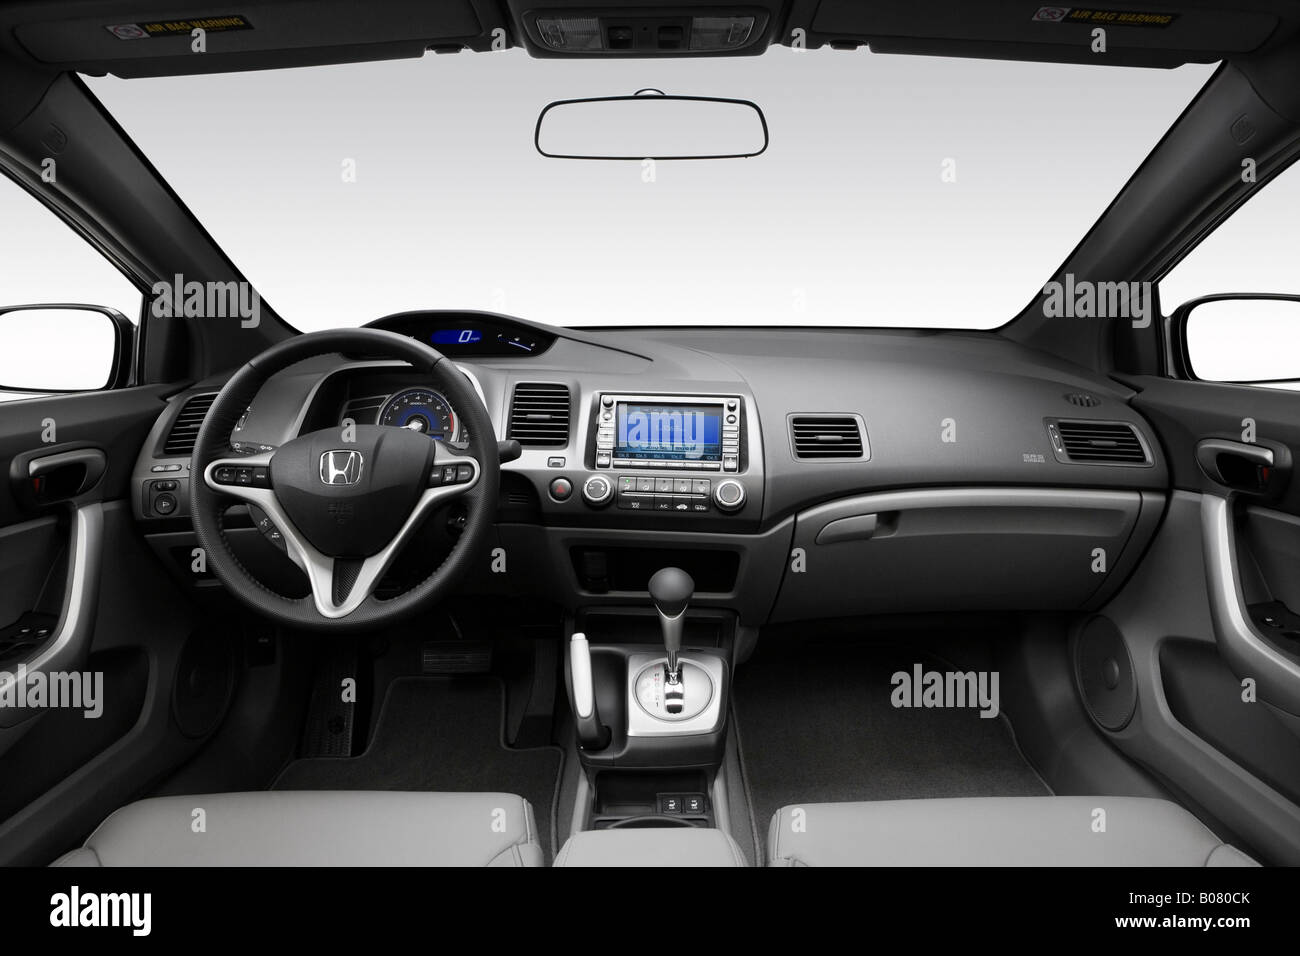 2008 honda civic ex l in gray dashboard center console. Black Bedroom Furniture Sets. Home Design Ideas